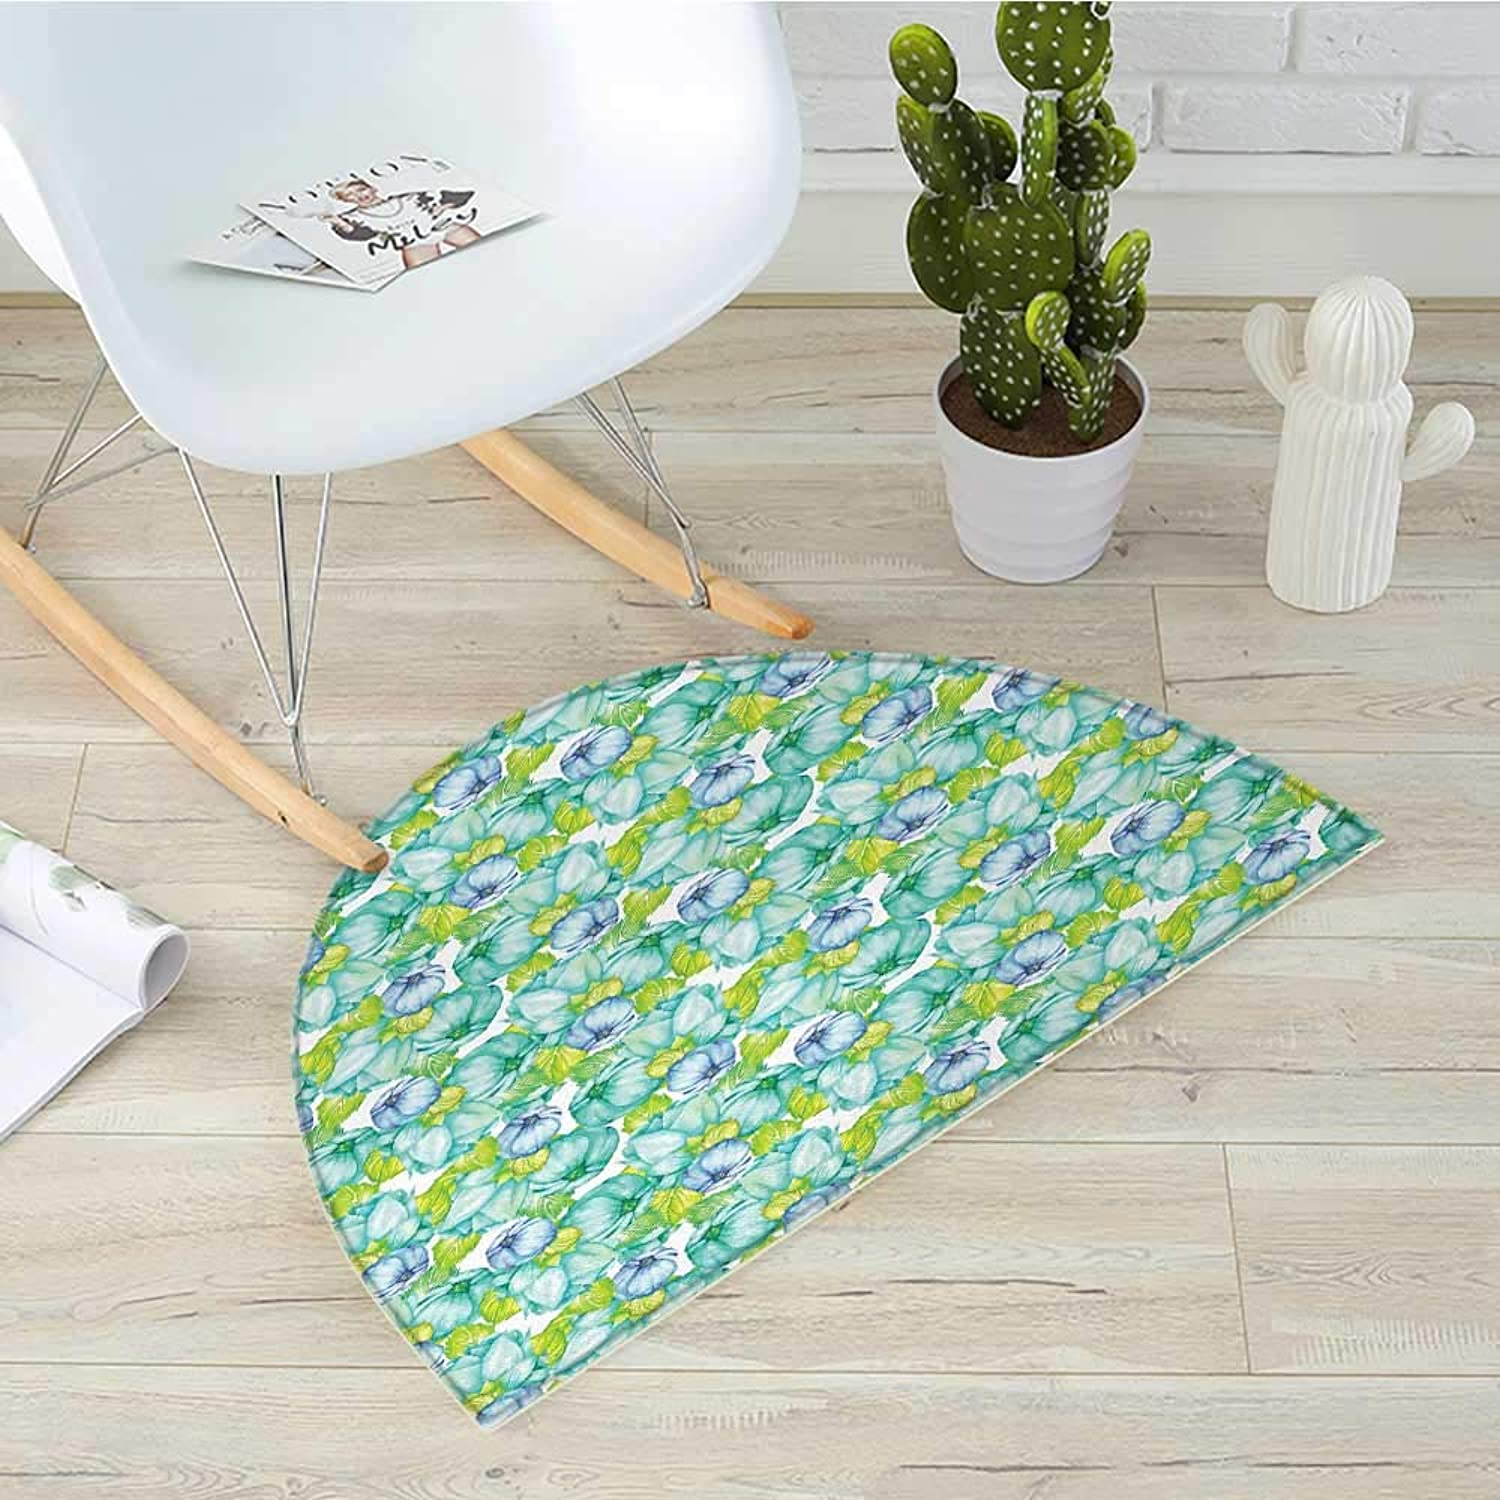 Turquoise Semicircle Doormat Blooming Flower Figures Watercolor Pastel Paint Bouquet Herbs Summer Theme Print Halfmoon doormats H 39.3  xD 59  Green White